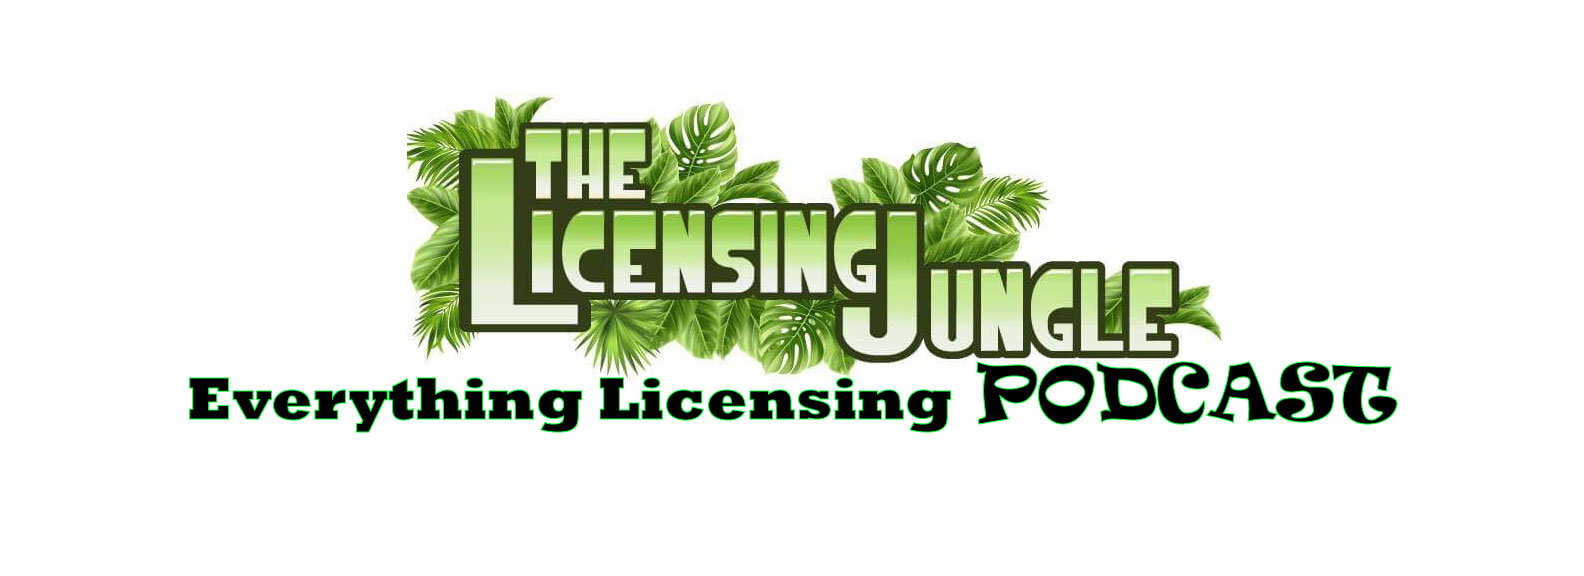 The Licensing Jungle